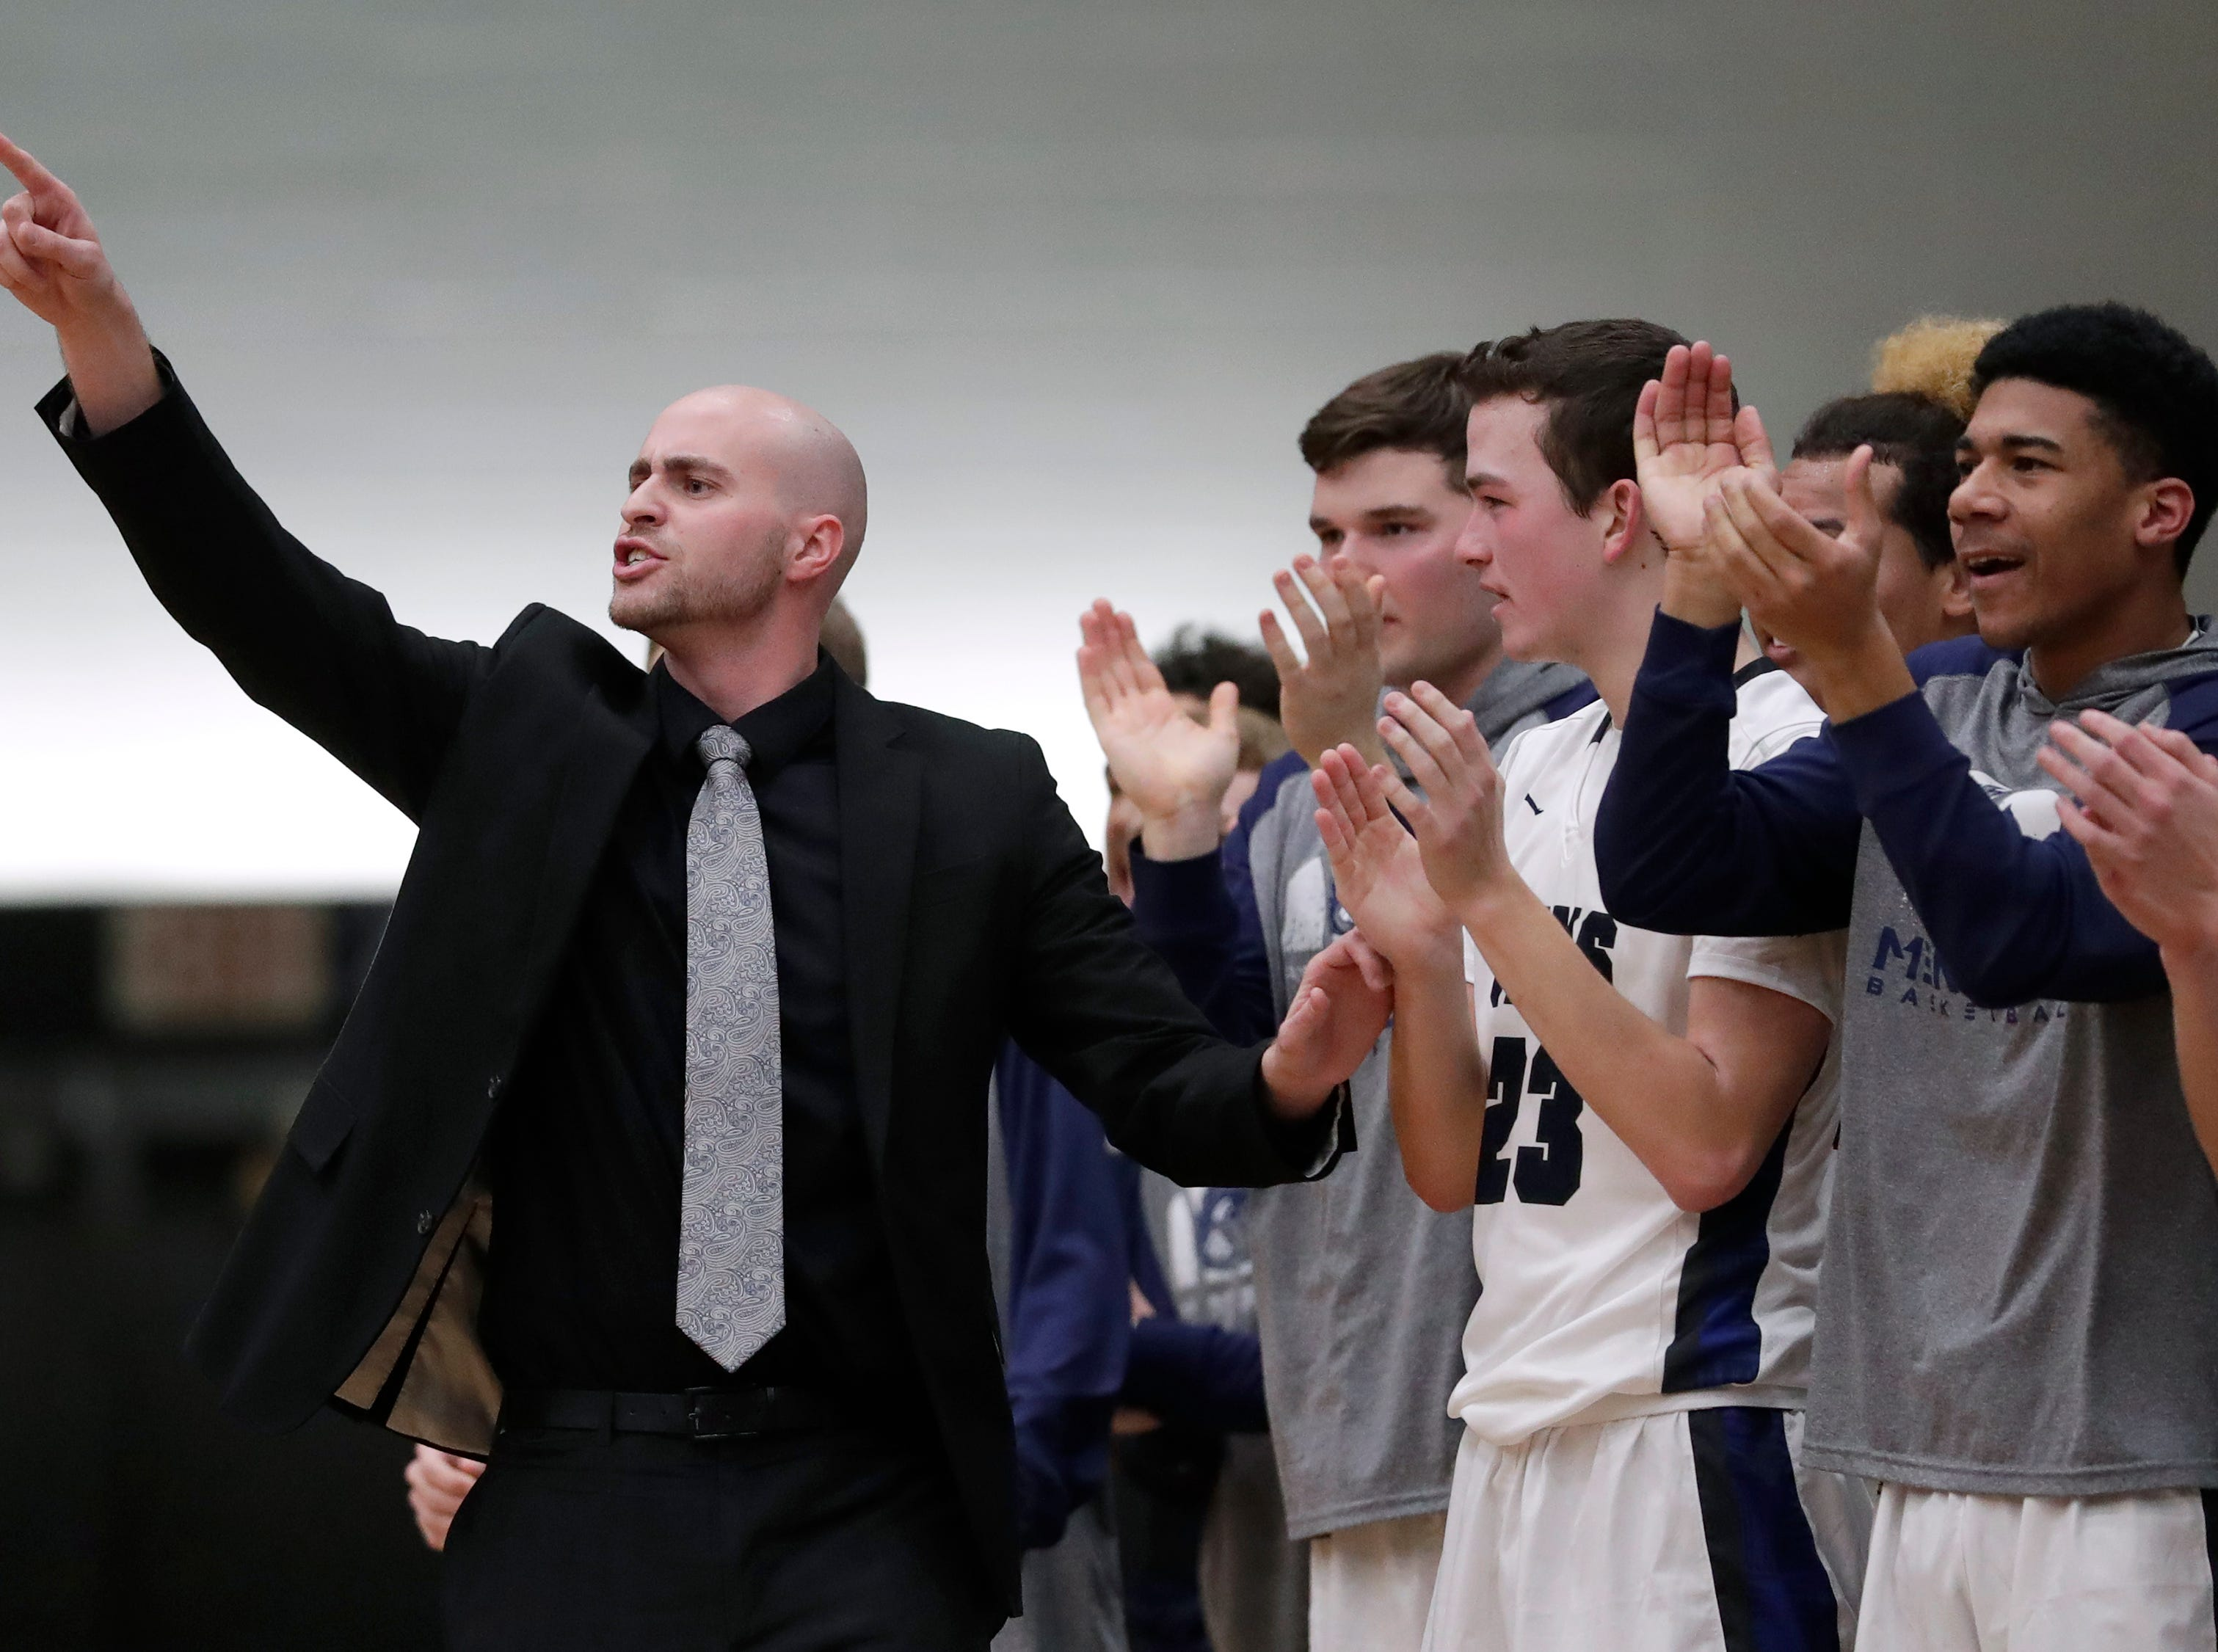 Menasha High School's head coach Sam Koslowski directs his players against West De Pere High School during their boys basketball game Tuesday, December 11, 2018, in Menasha, Wis. Dan Powers/USA TODAY NETWORK-Wisconsin